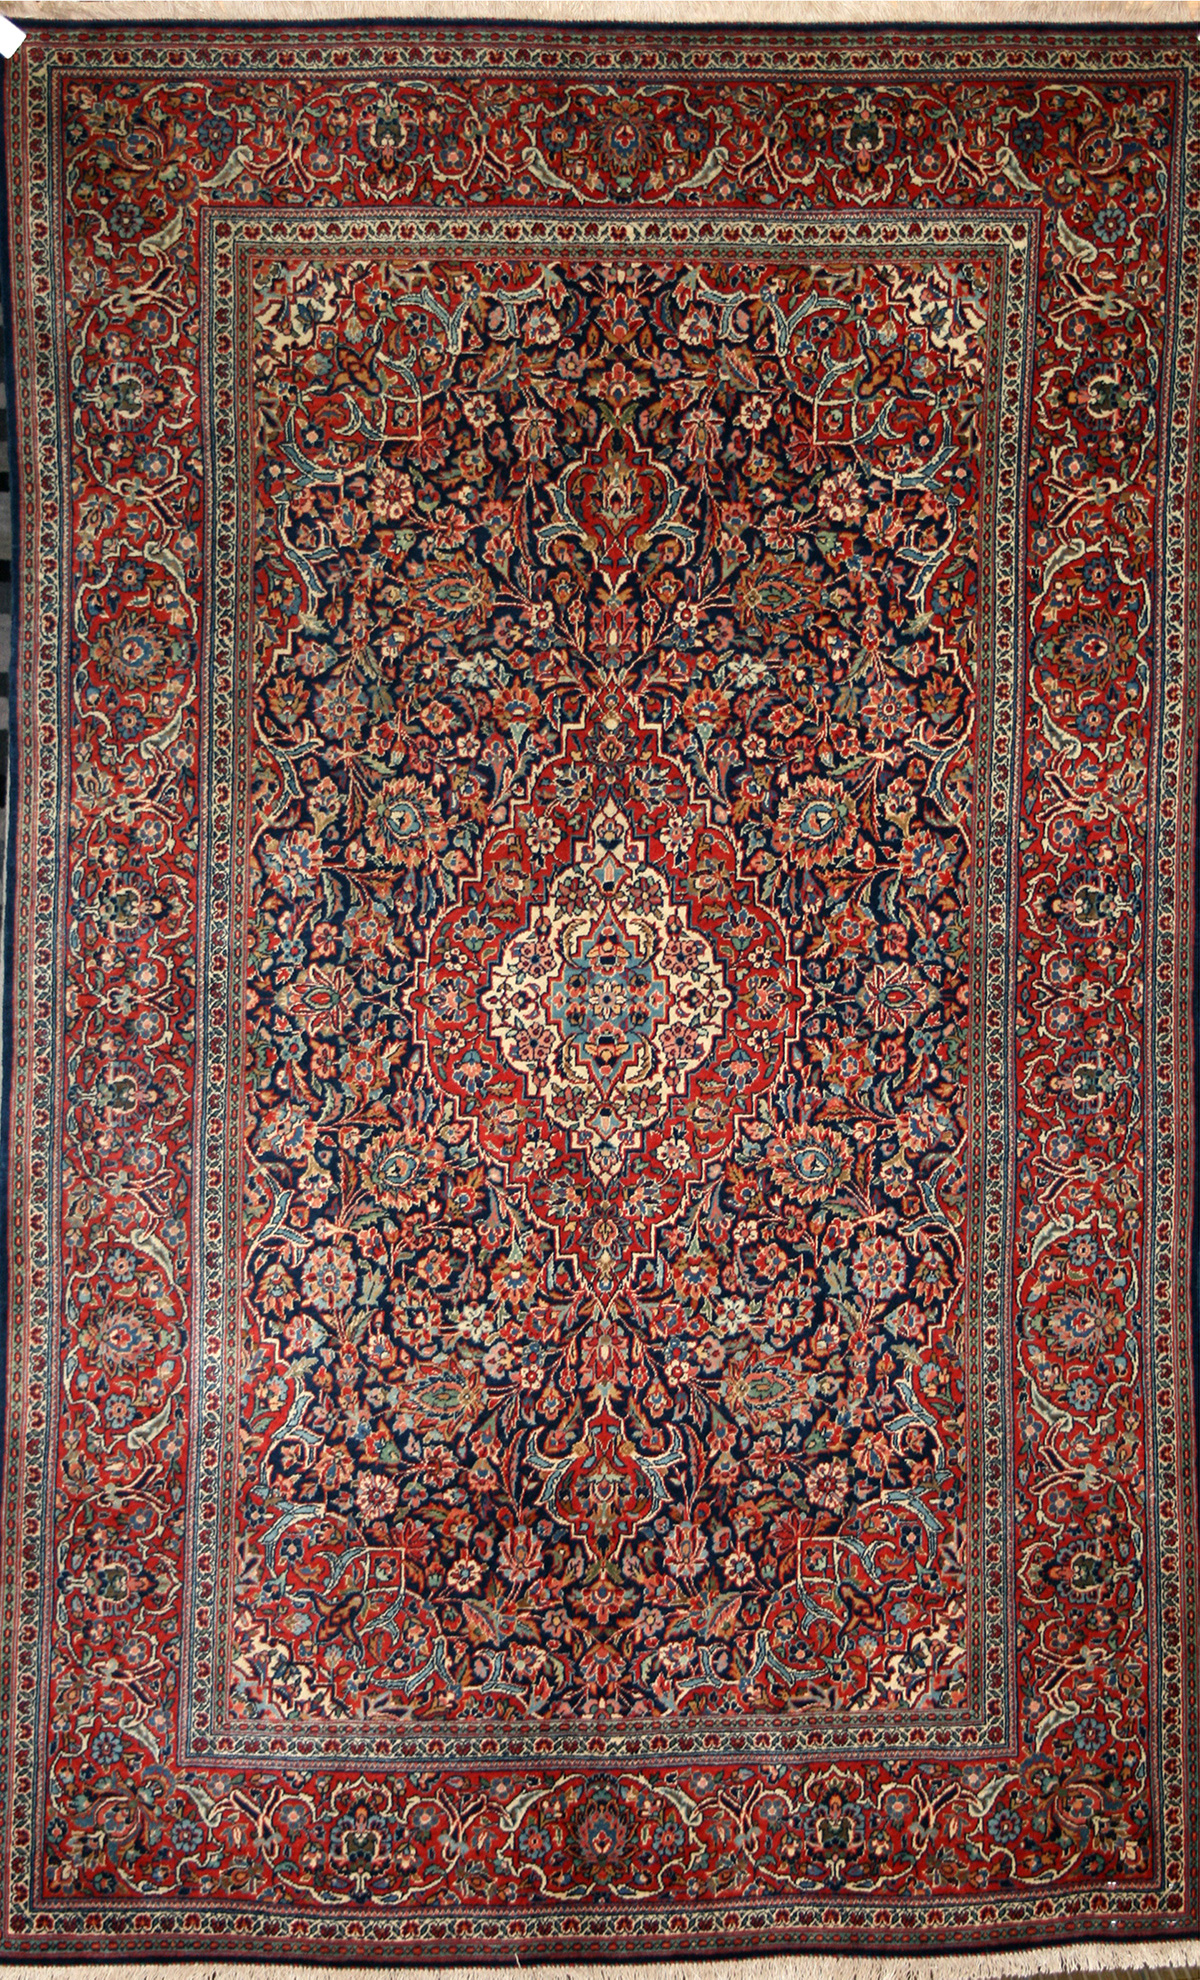 Persian Hand Knotted Kashan Rug In Wool Cotton Foundation